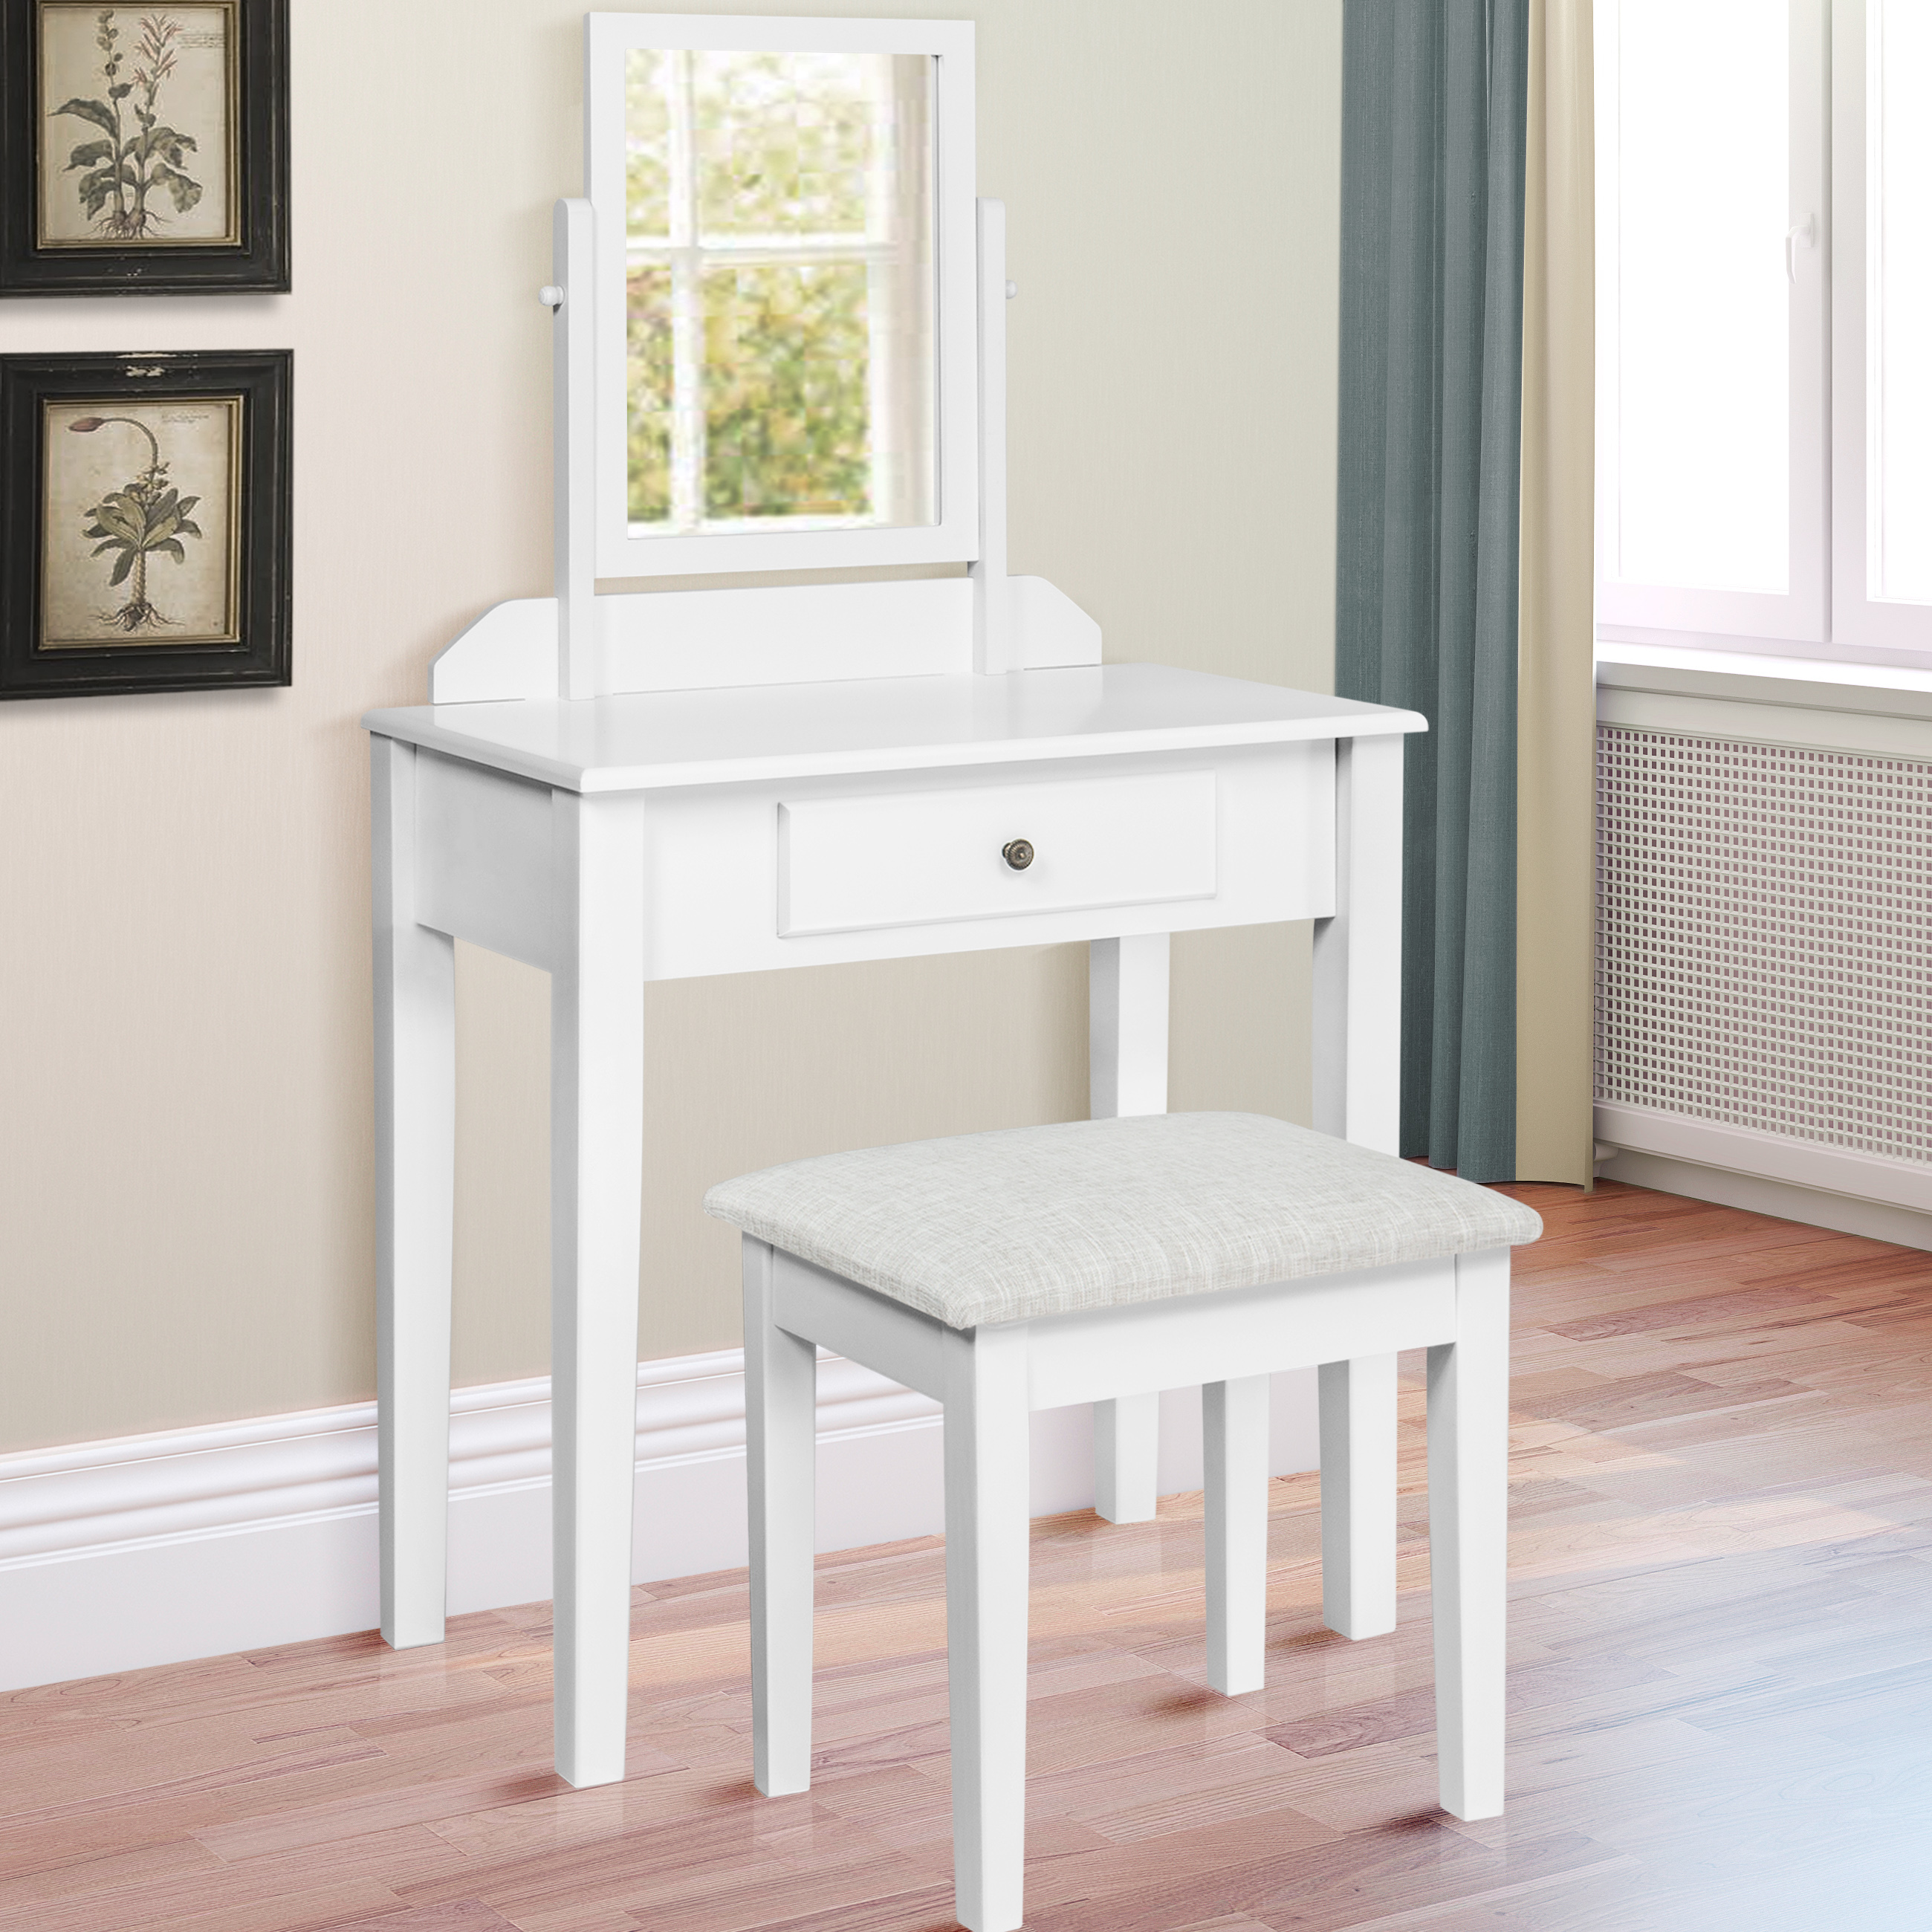 Bathroom Vanity Table best choice products bathroom vanity table set w/ stool hair